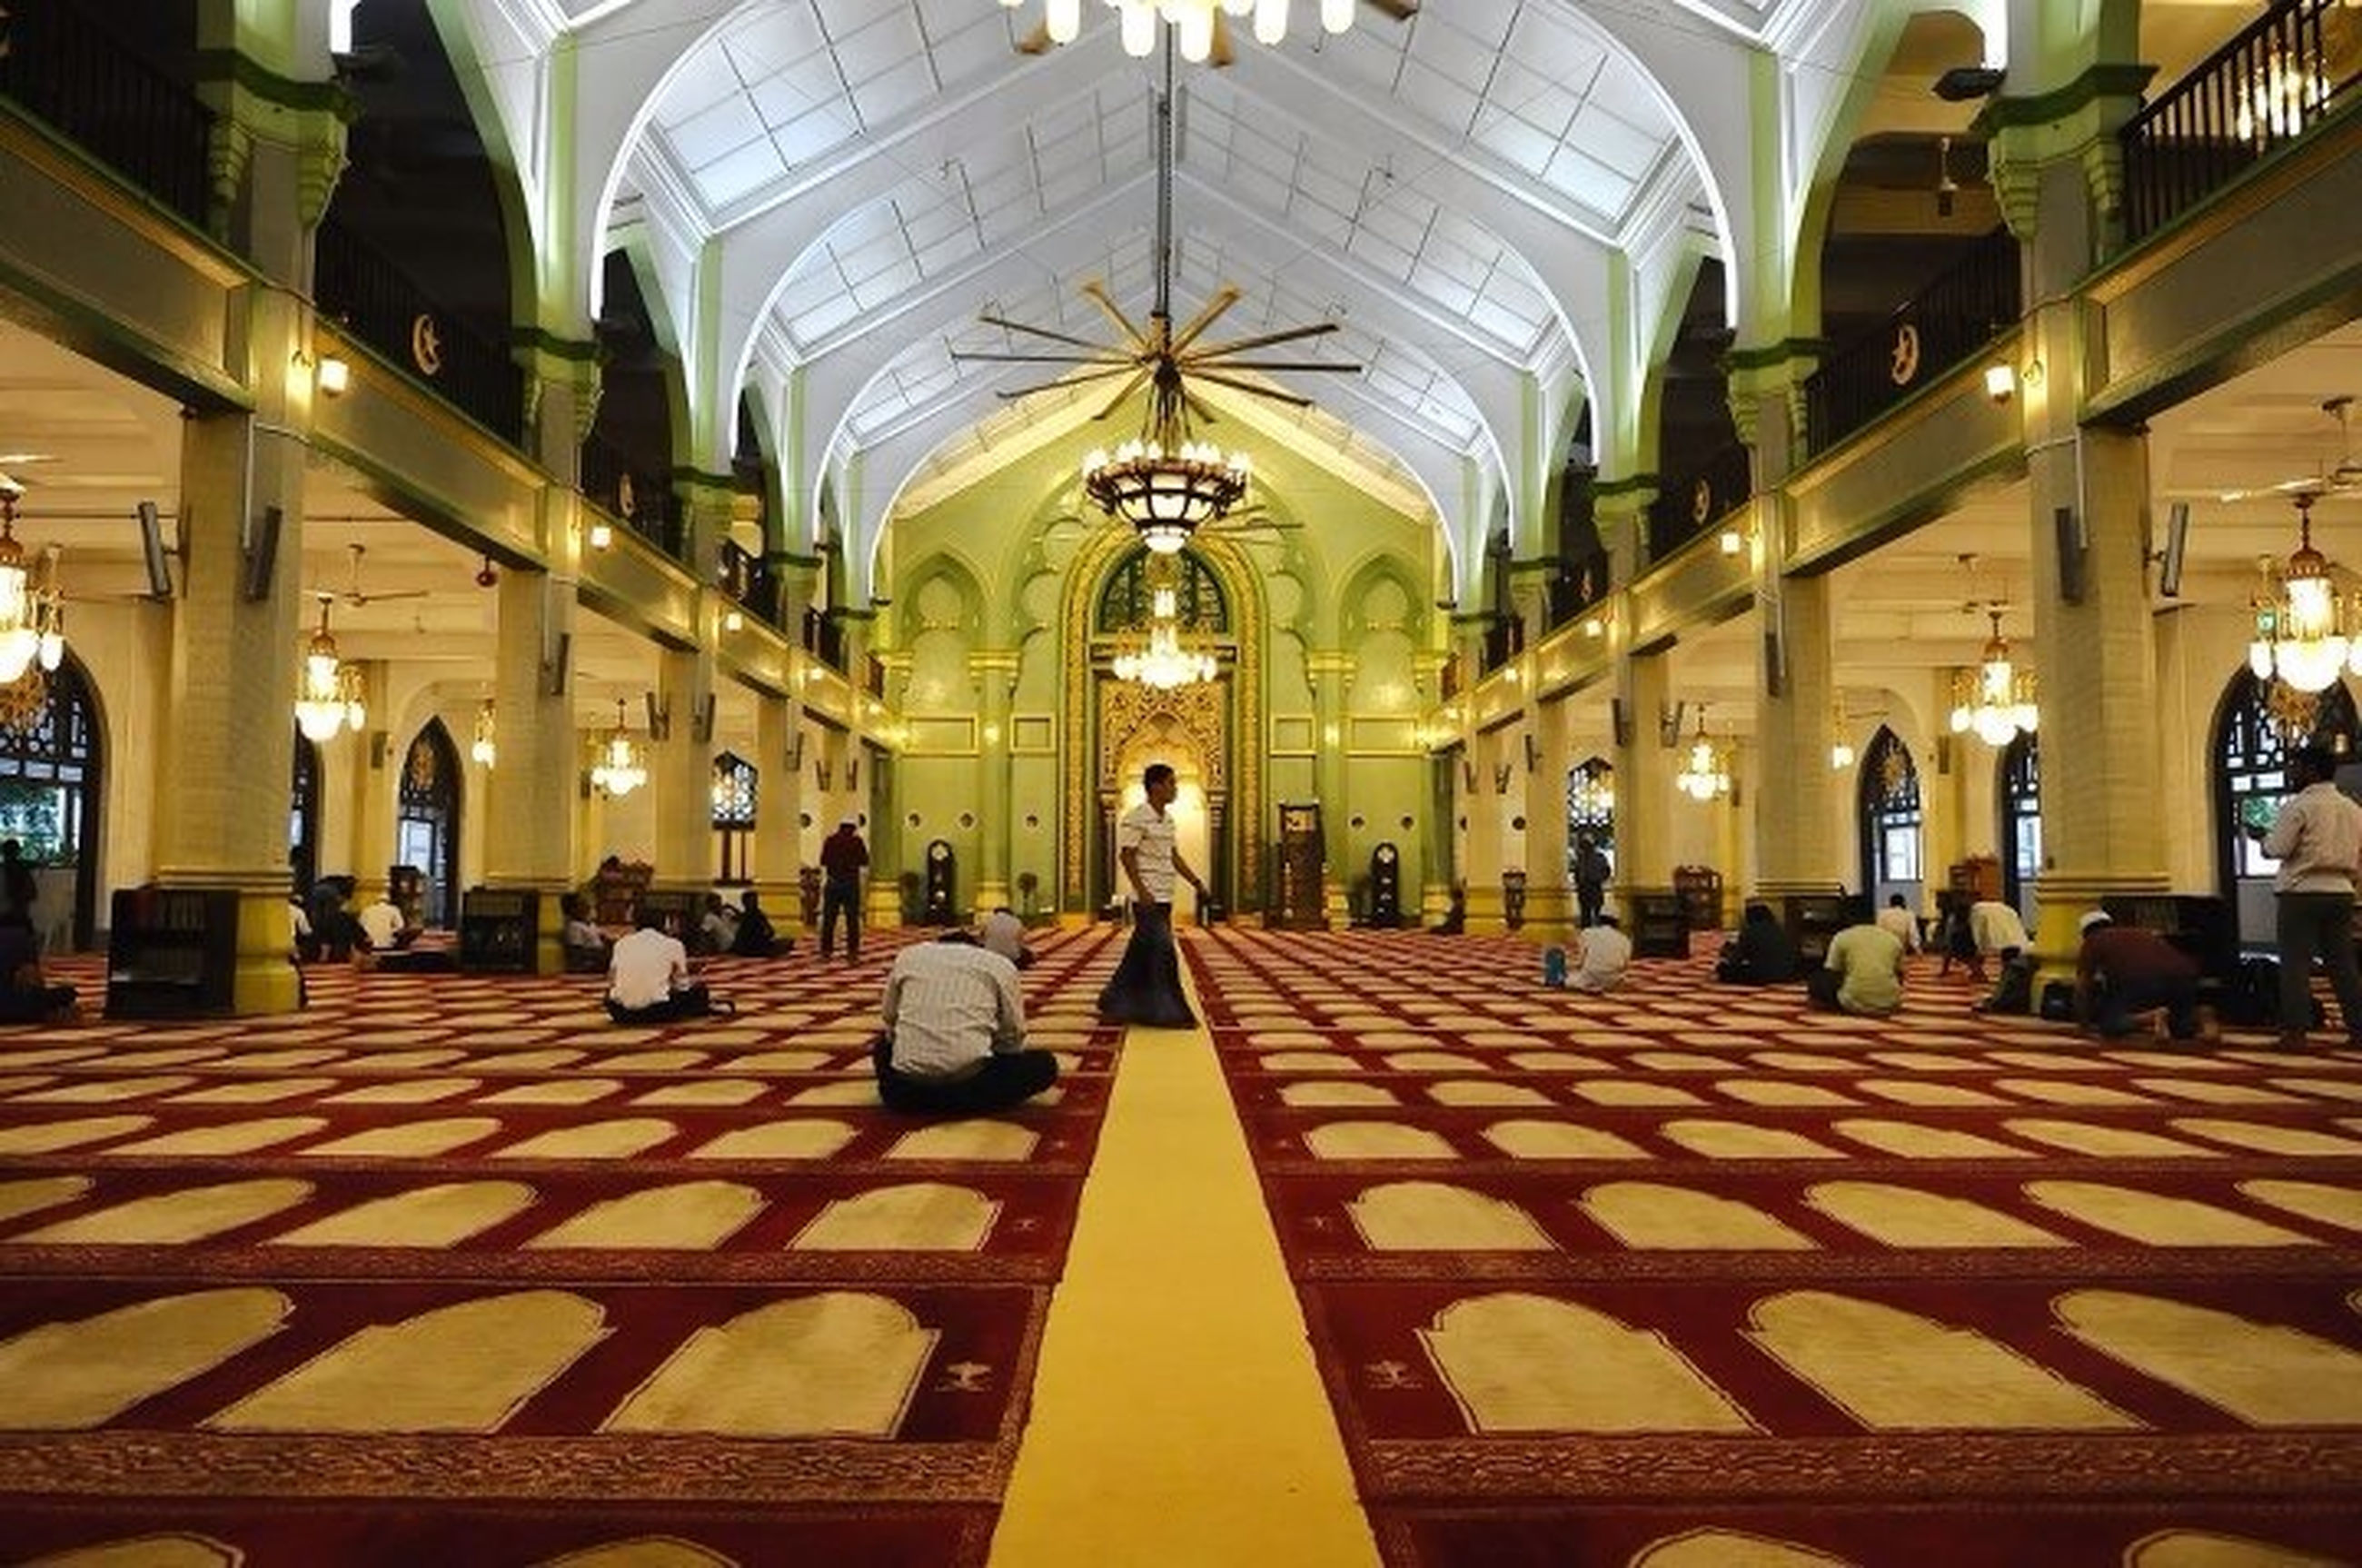 indoors, architecture, ceiling, person, large group of people, men, built structure, architectural column, arch, lifestyles, illuminated, corridor, travel, flooring, place of worship, railroad station, travel destinations, religion, leisure activity